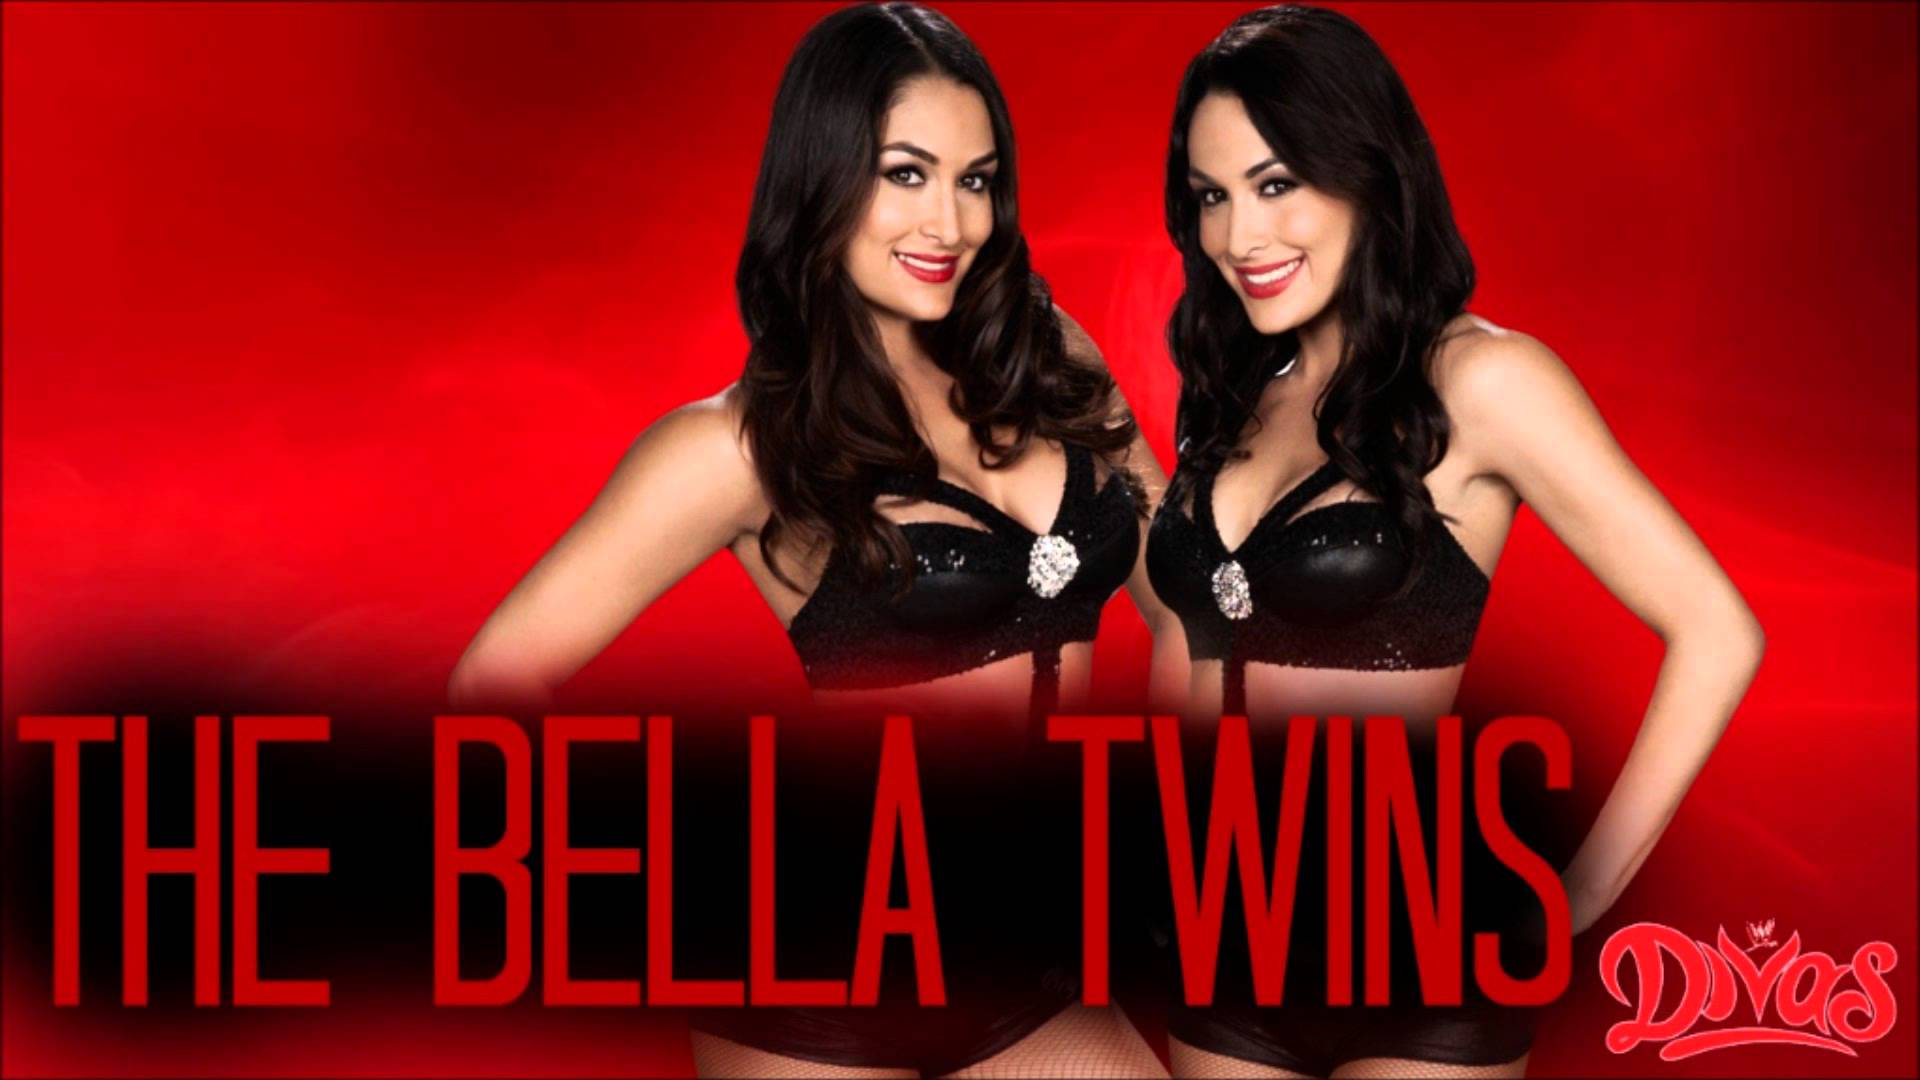 bella twins 2013 wallpaper images pictures becuo